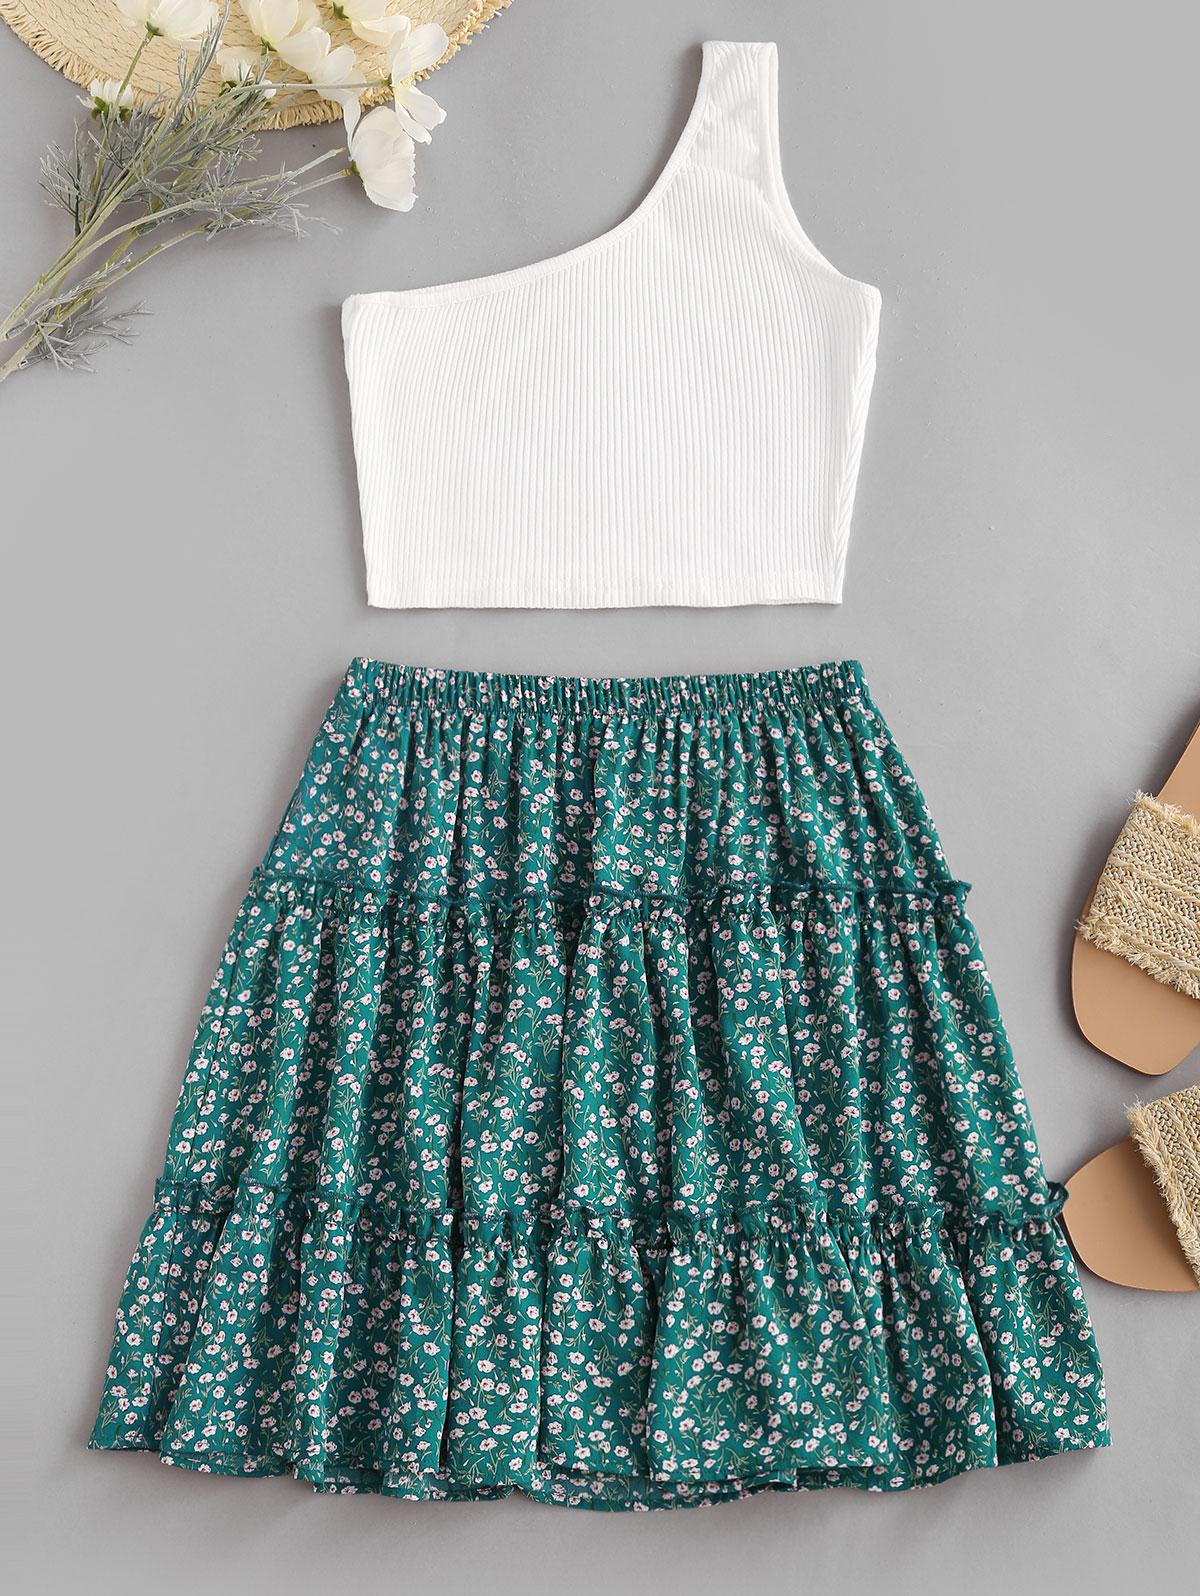 Ribbed One Shoulder Ditsy Print Tiered Skirt Set